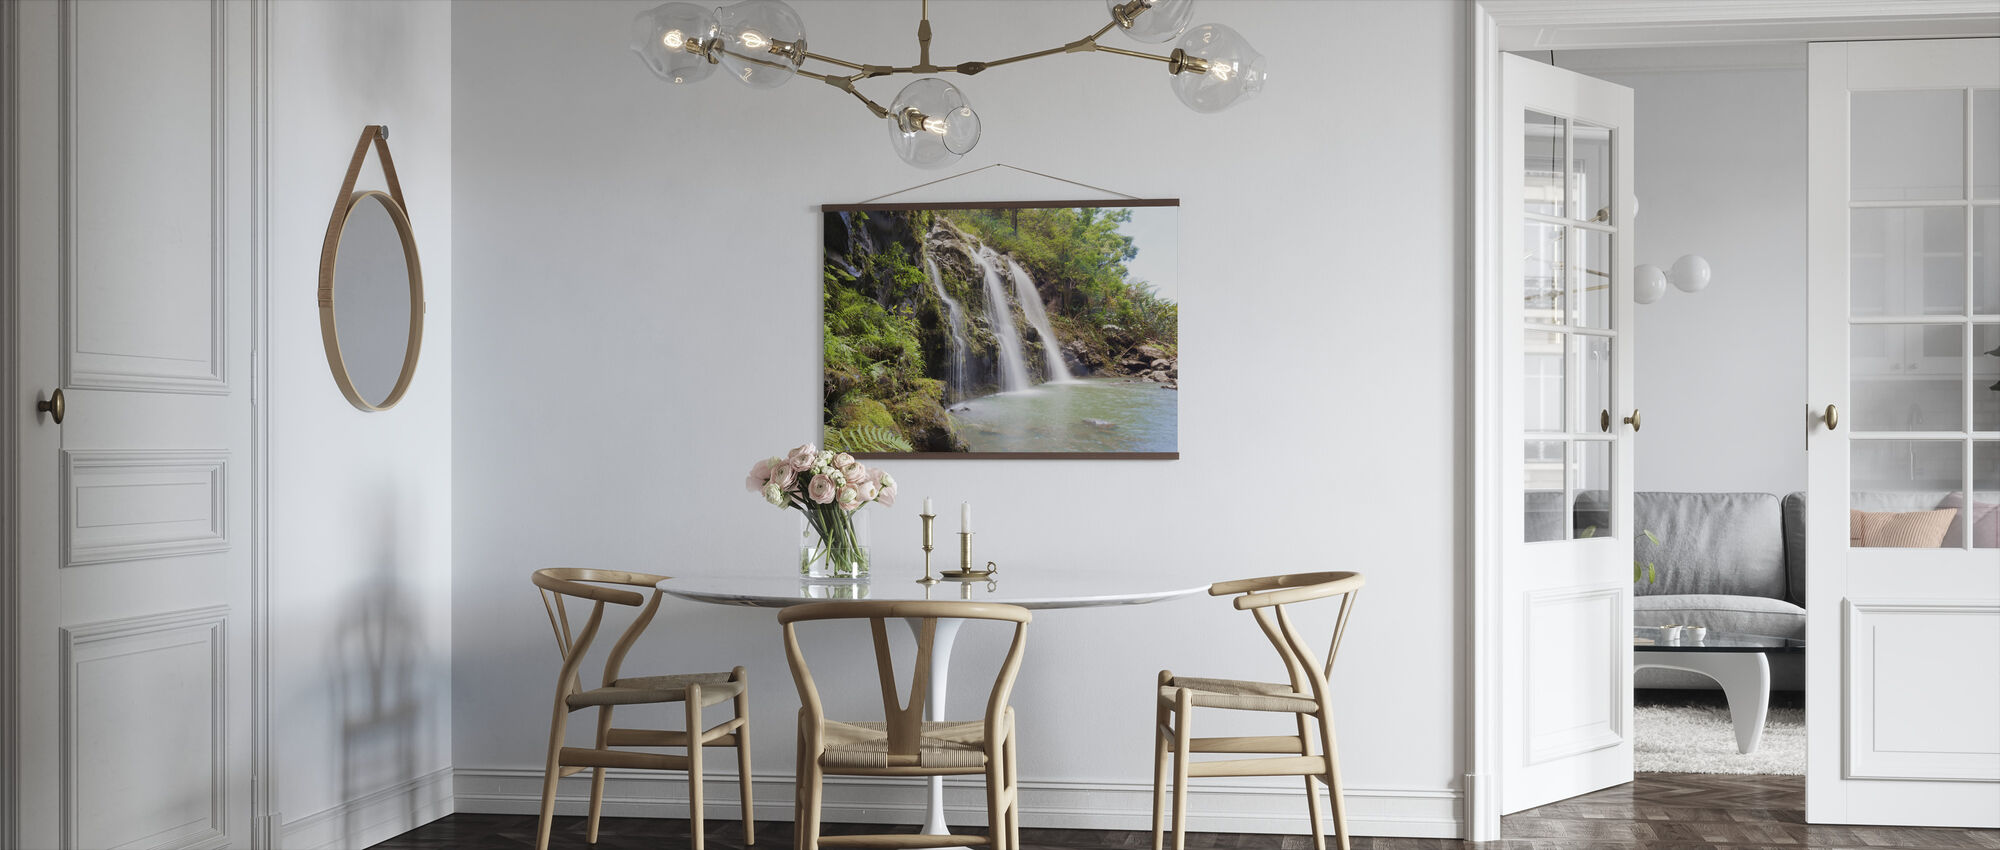 Cascate Triple - Poster - Cucina